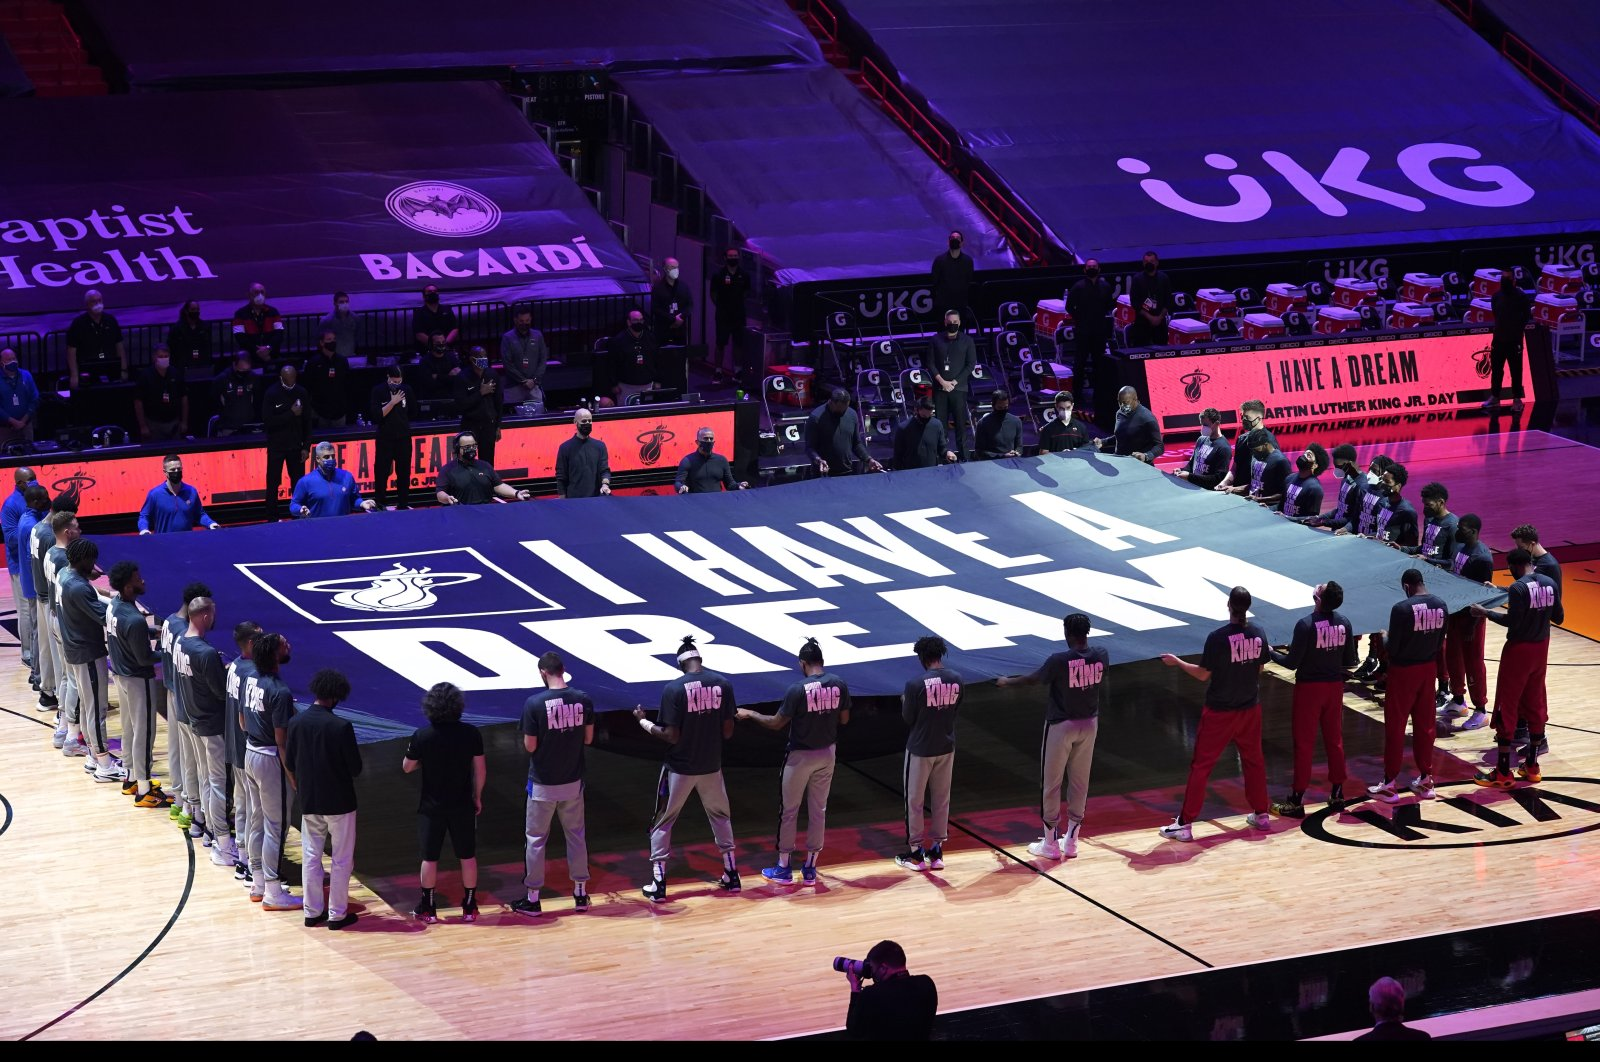 """Miami Heat and Detroit Pistons players hold a """"I Have a Dream"""" banner in honor of the Martin Luther King Jr., holiday before an NBA basketball game, in Miami, Florida, U.S., Jan. 18, 2021. (AP Photo/Marta Lavandier)"""